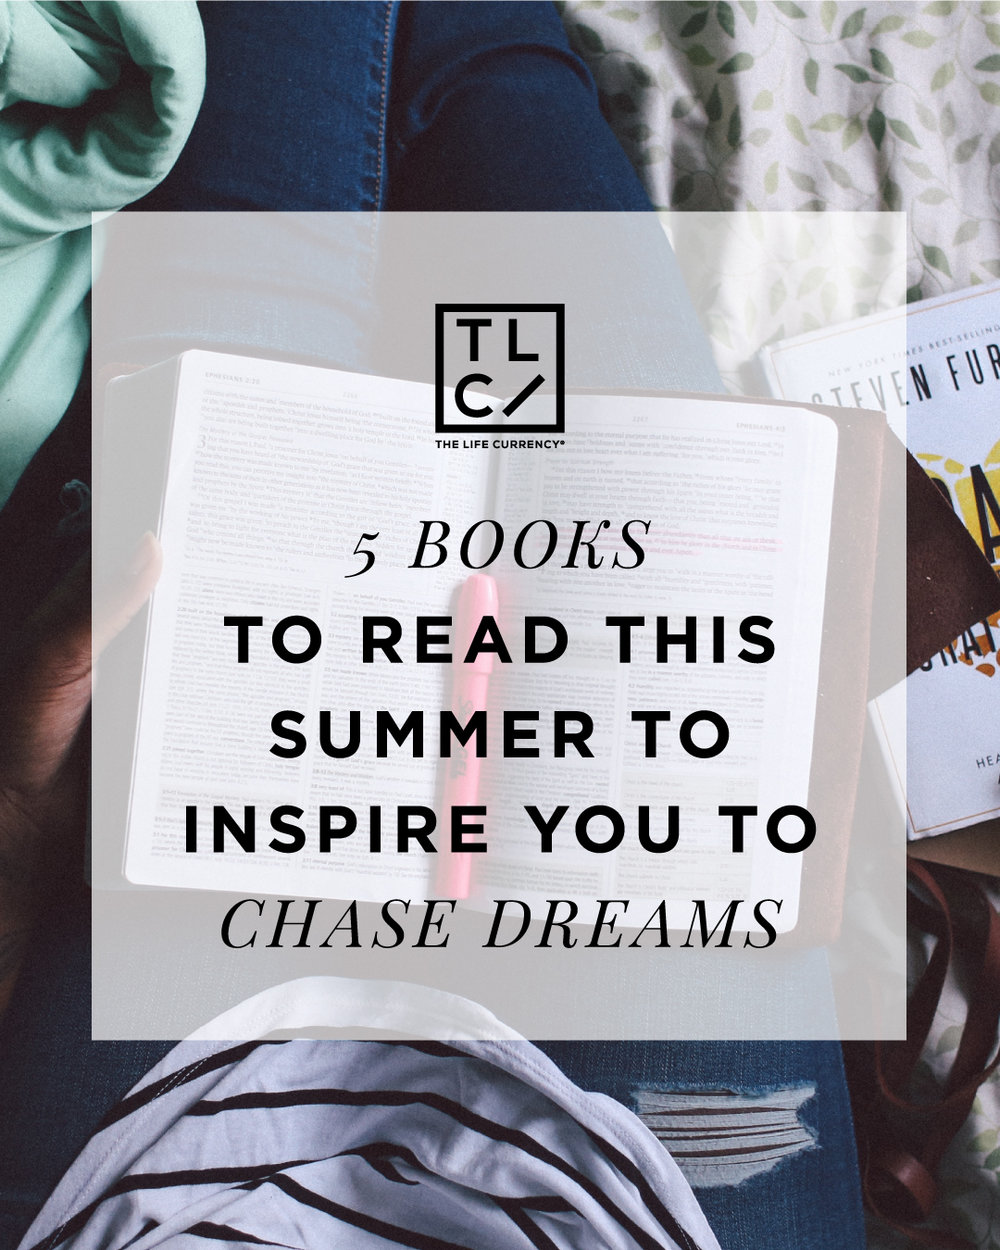 5 Books to Read This Summer To Inspire You To Chase Dreams